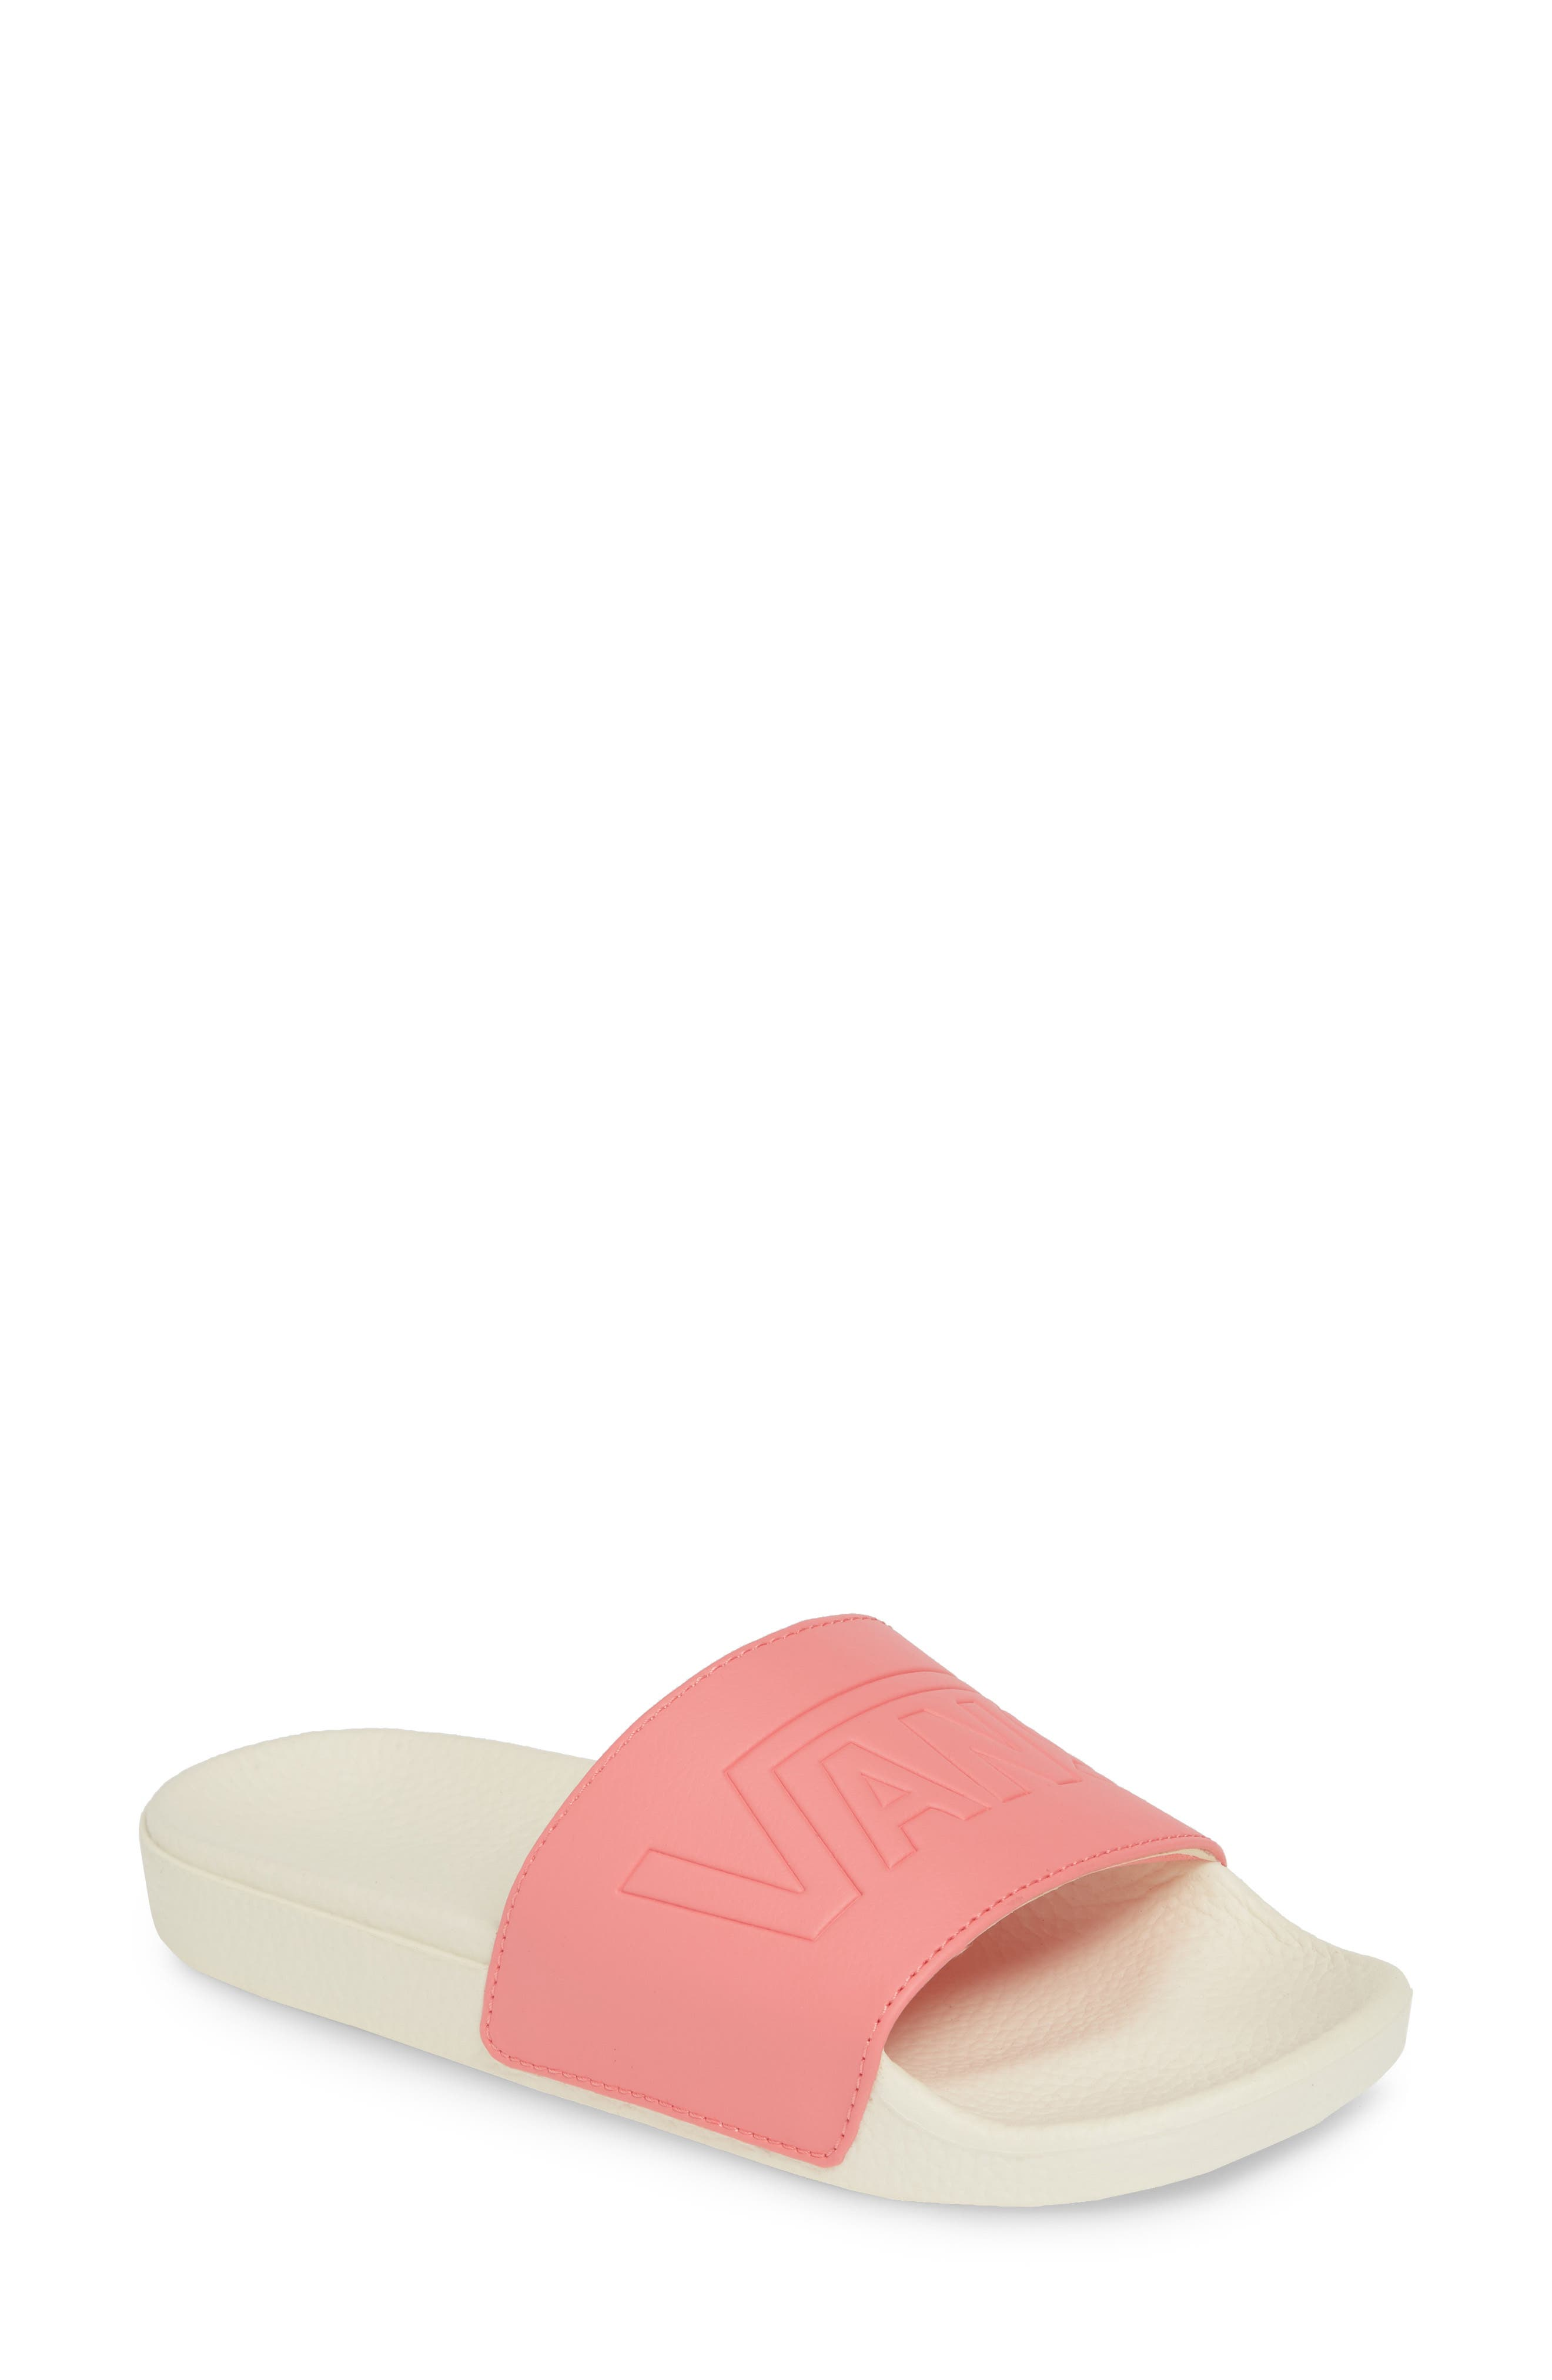 VANS, Slide-On Sandal, Main thumbnail 1, color, STRAWBERRY PINK